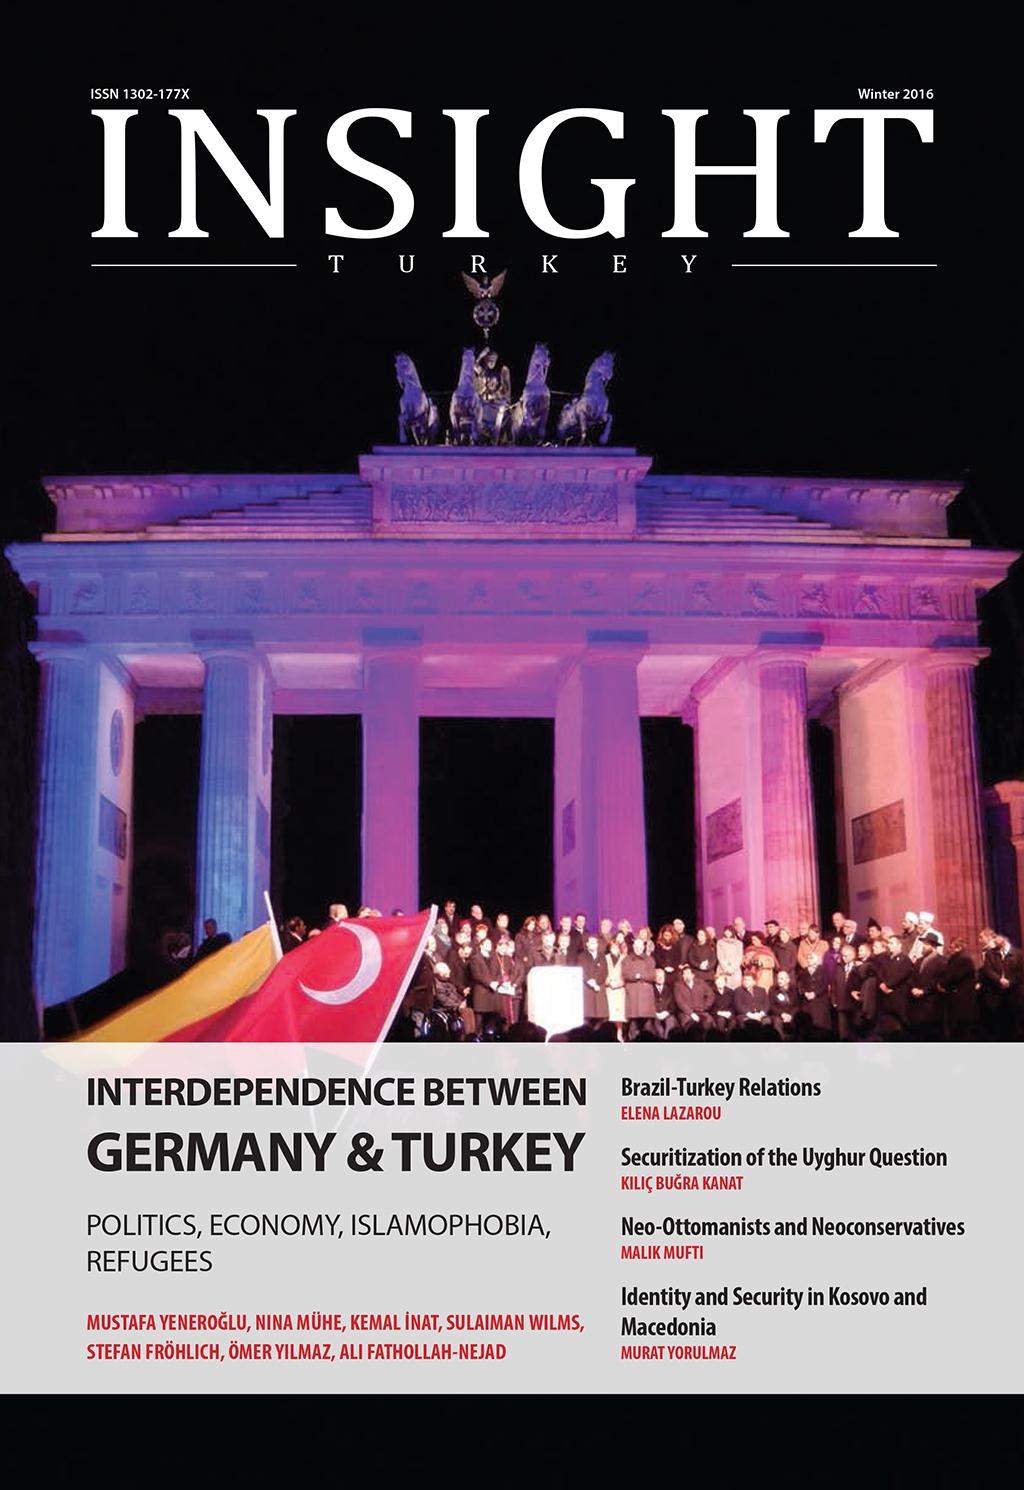 Interdependence between Germany amp Turkey